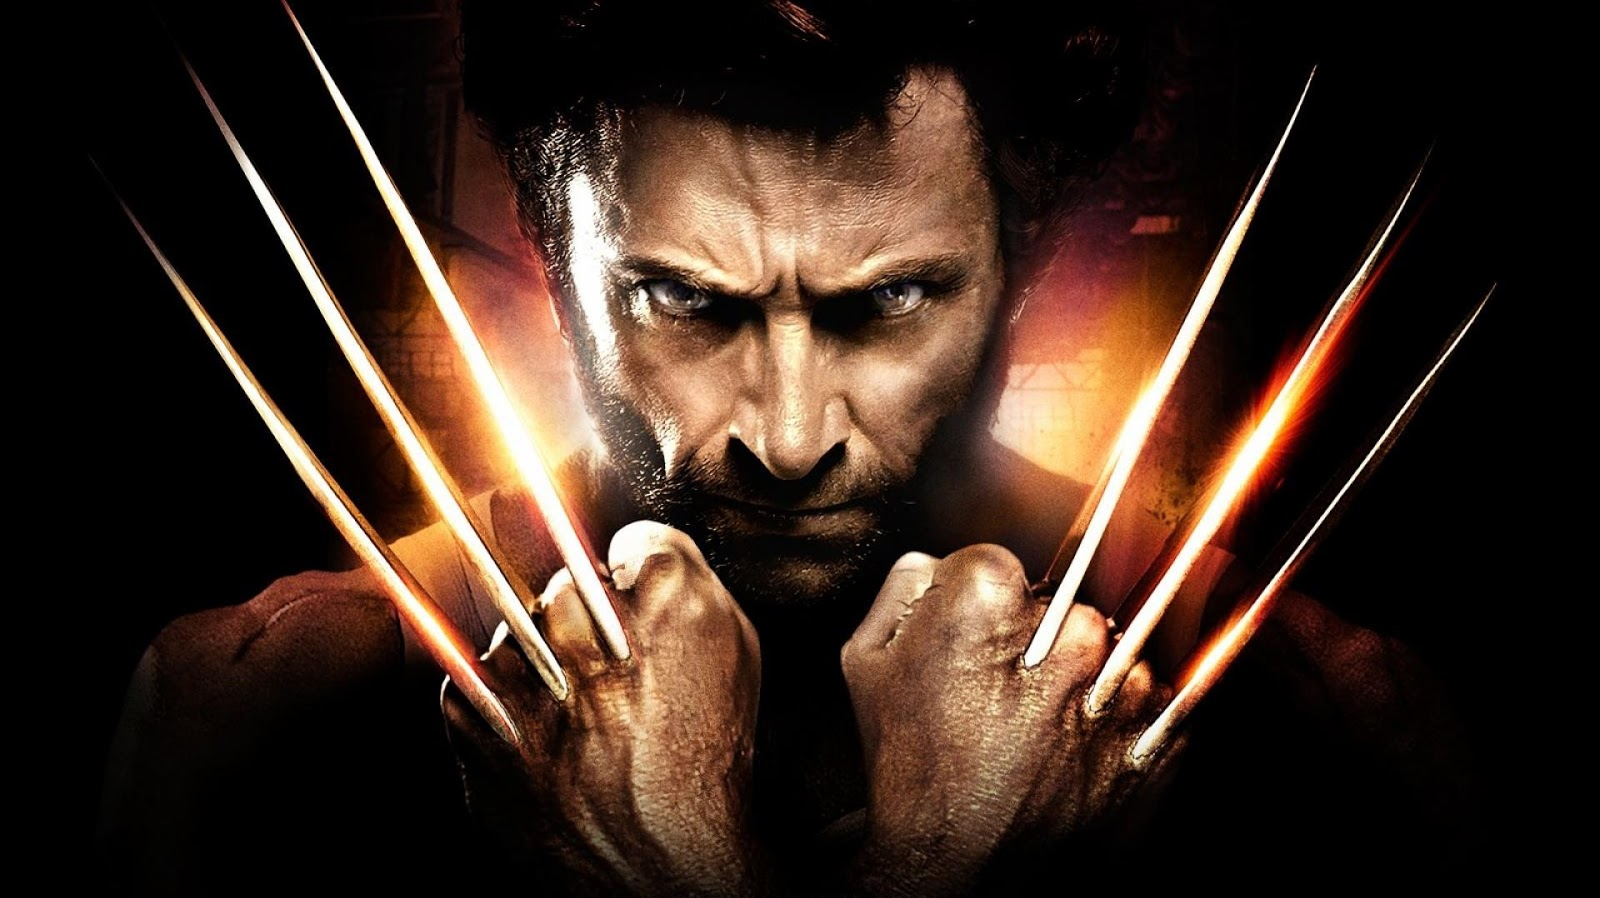 Wallpapers : Images : Picpile: Logan: u0026#39;Wolverine 3 ...